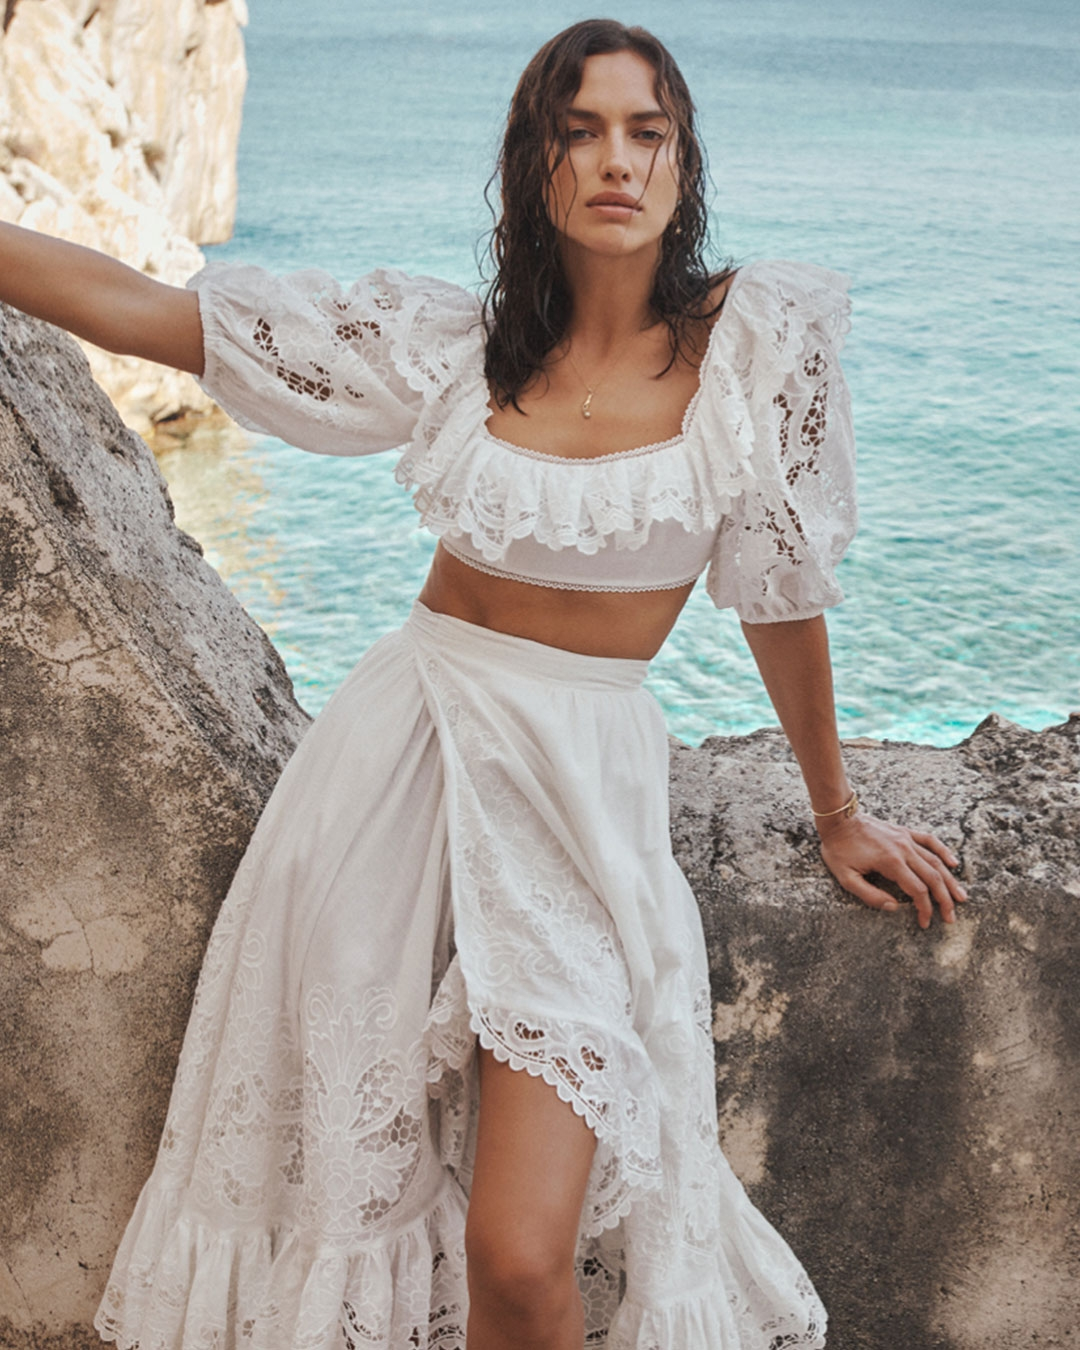 Shop our Edit of white dresses, skirts and tops